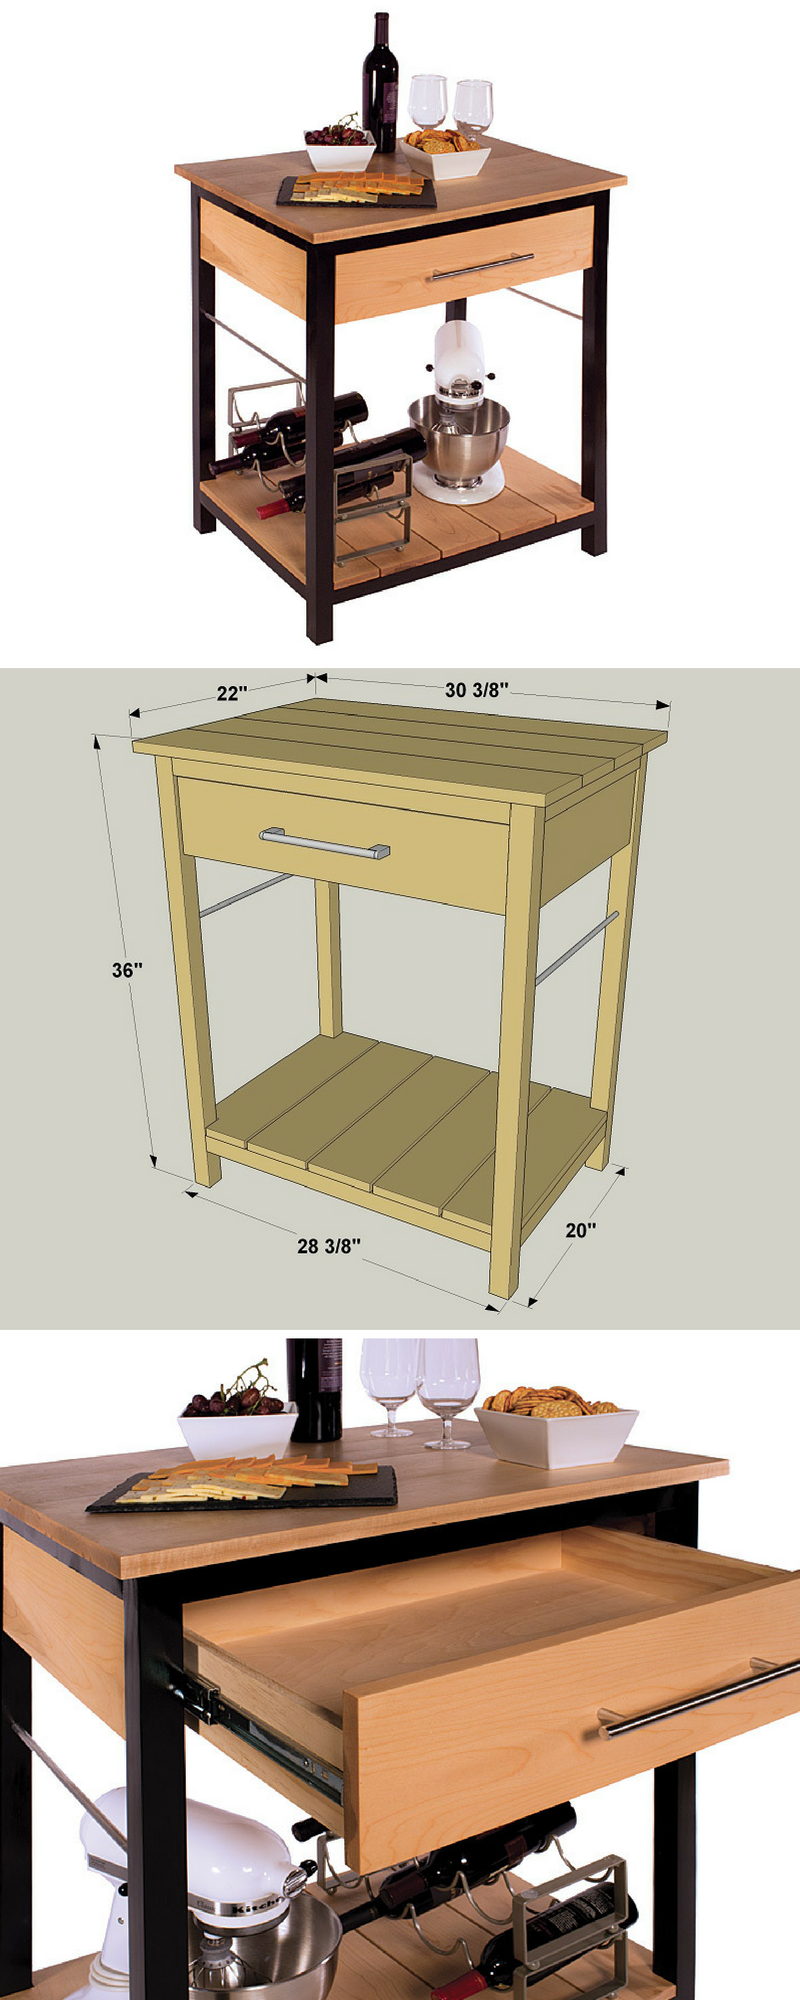 Here's proof that you don't need a lot of space to have a great-looking, hardworking island in your kitchen. This one measures less than 2' x 3', but it packs a lot of storage and work area into that small space. You can build one yourself with some pine and maple boards and a little bit of plywood.